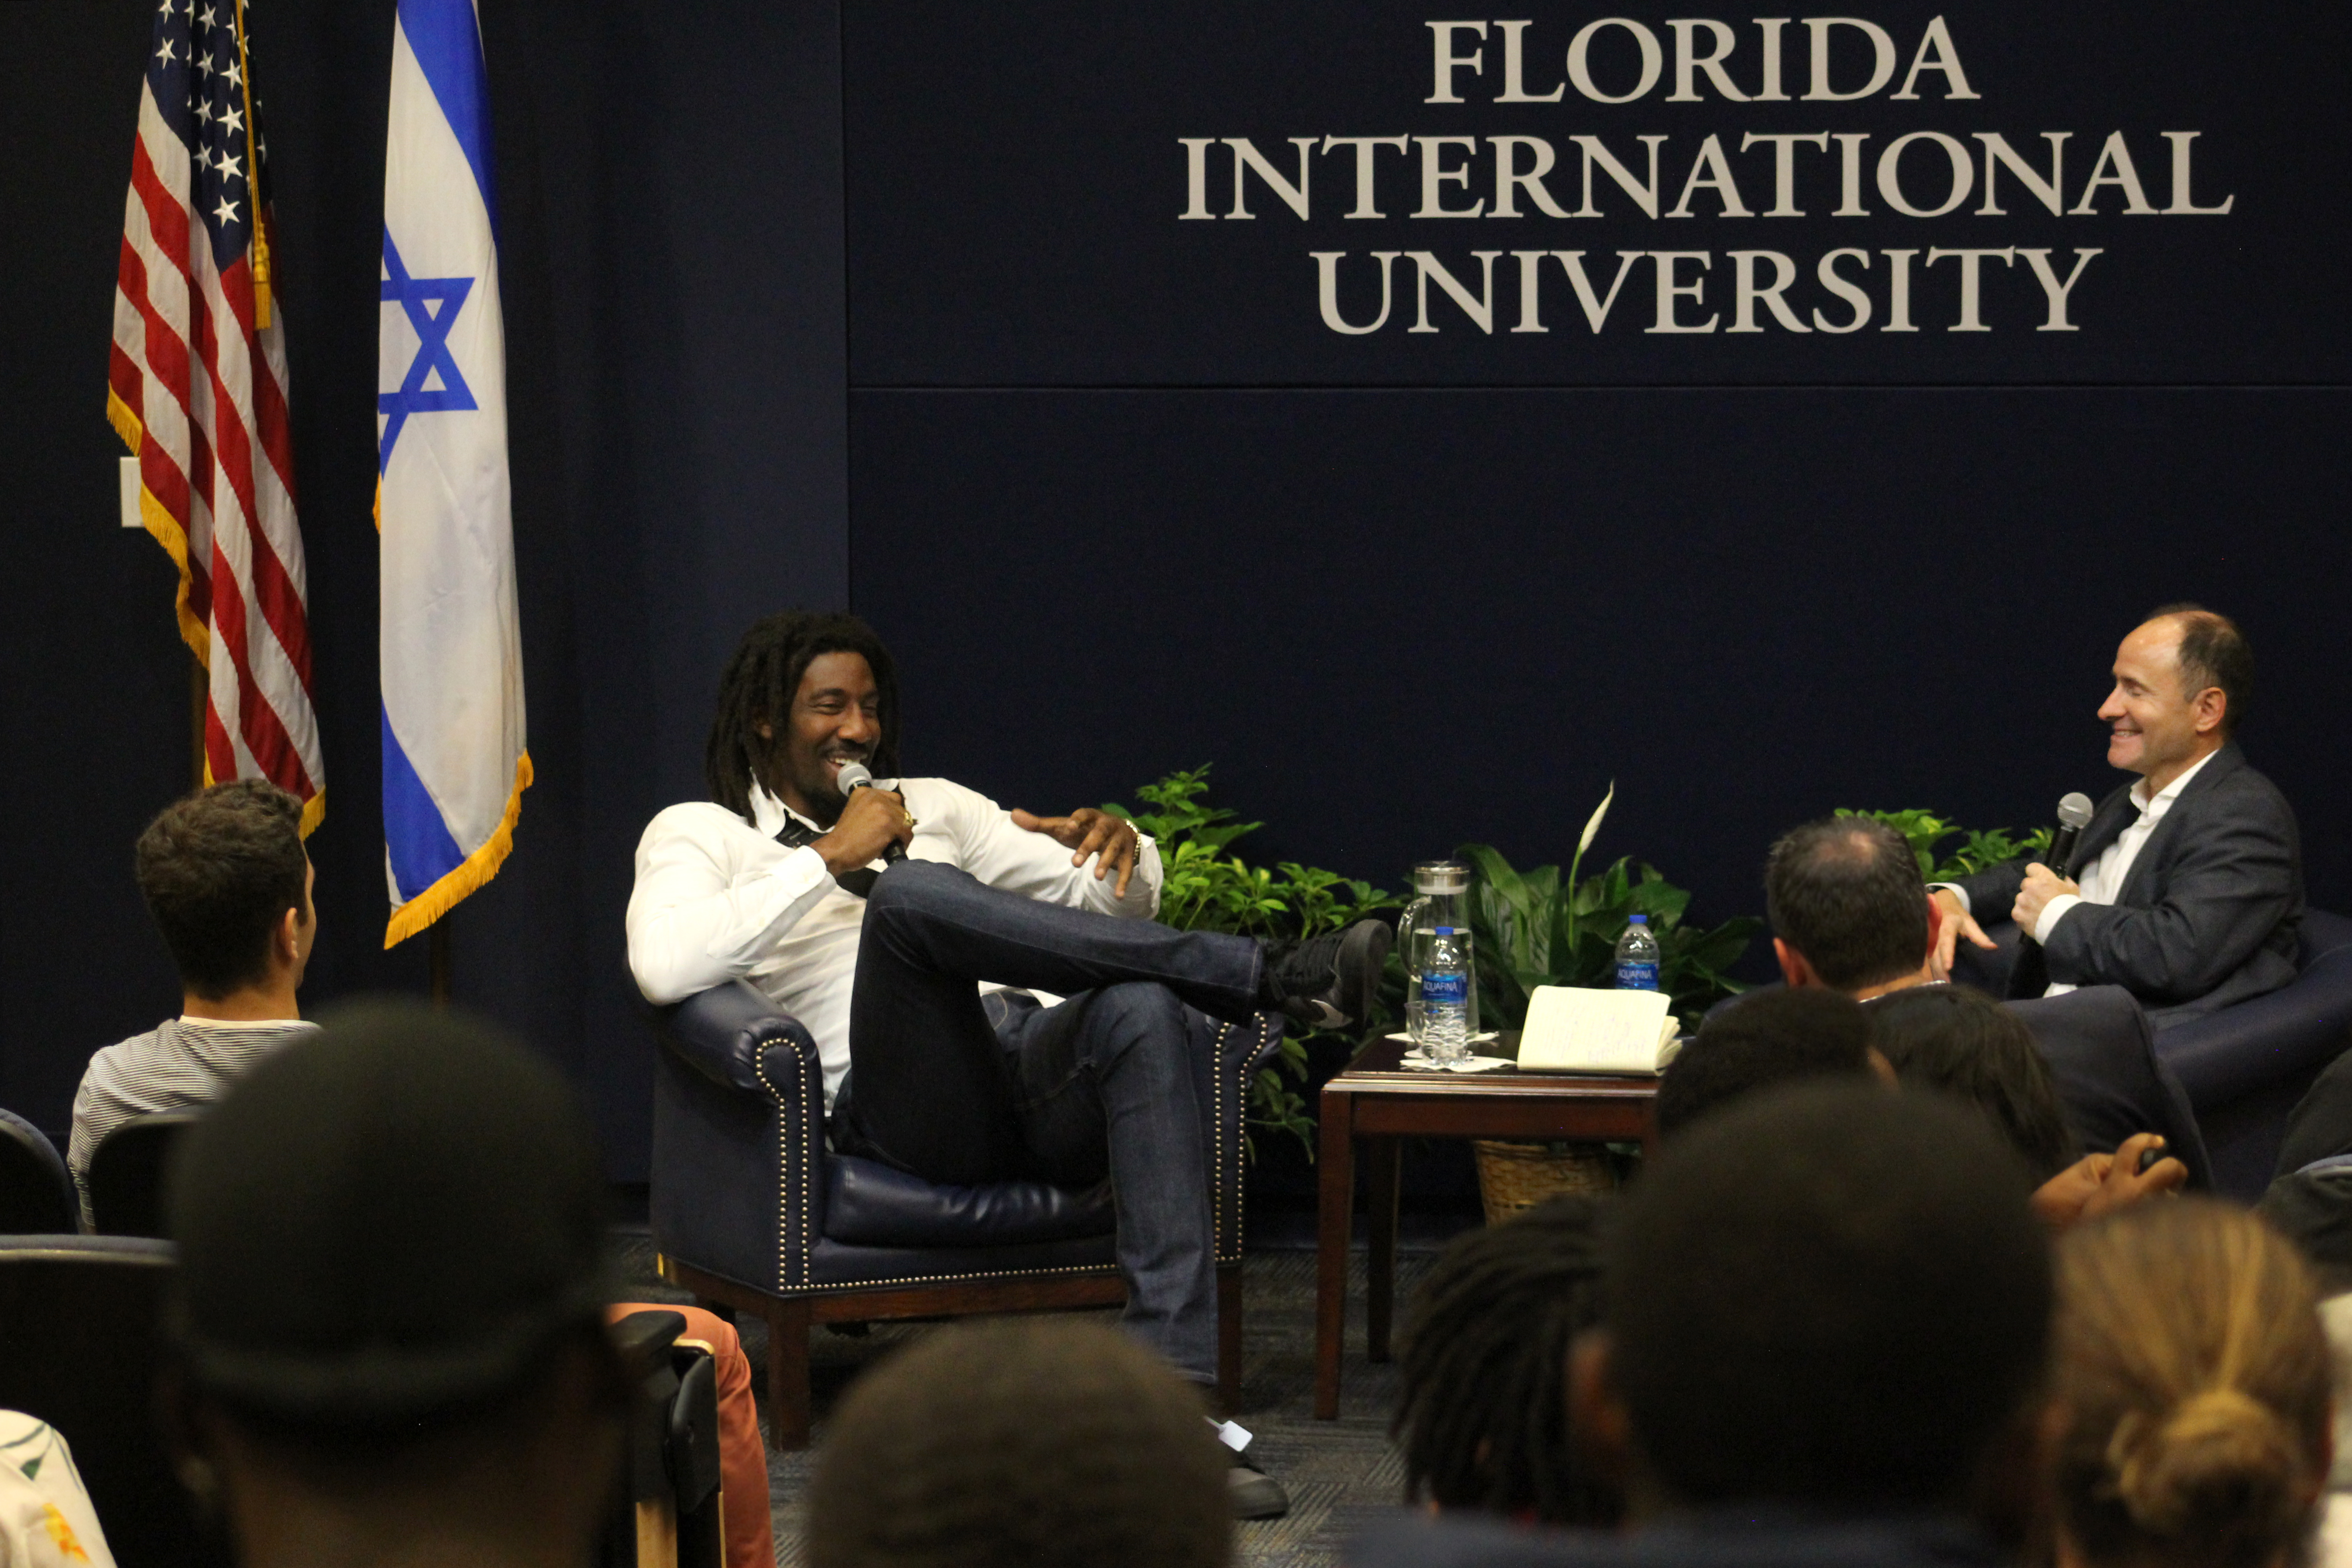 NBA All-Star Amare Stoudemire visits FIU for Hillel Event - PantherNOW